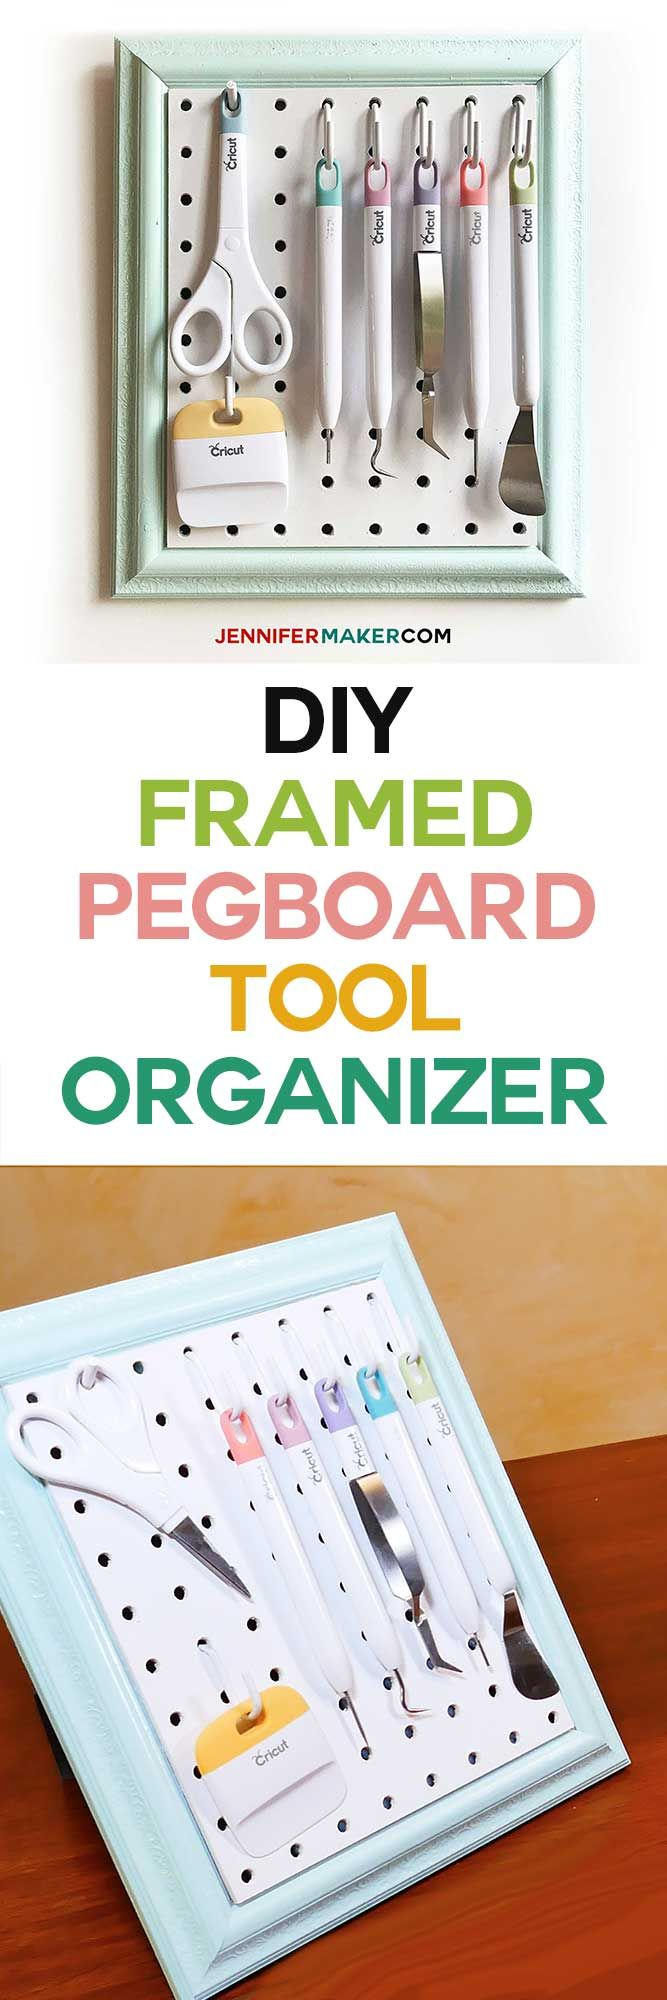 Framed Pegboard Craft Organizer Tutorial - How to Make a DIY Pegboard Frame for Your Craft Tools | #pegboard #craftroom #craftroomorganization